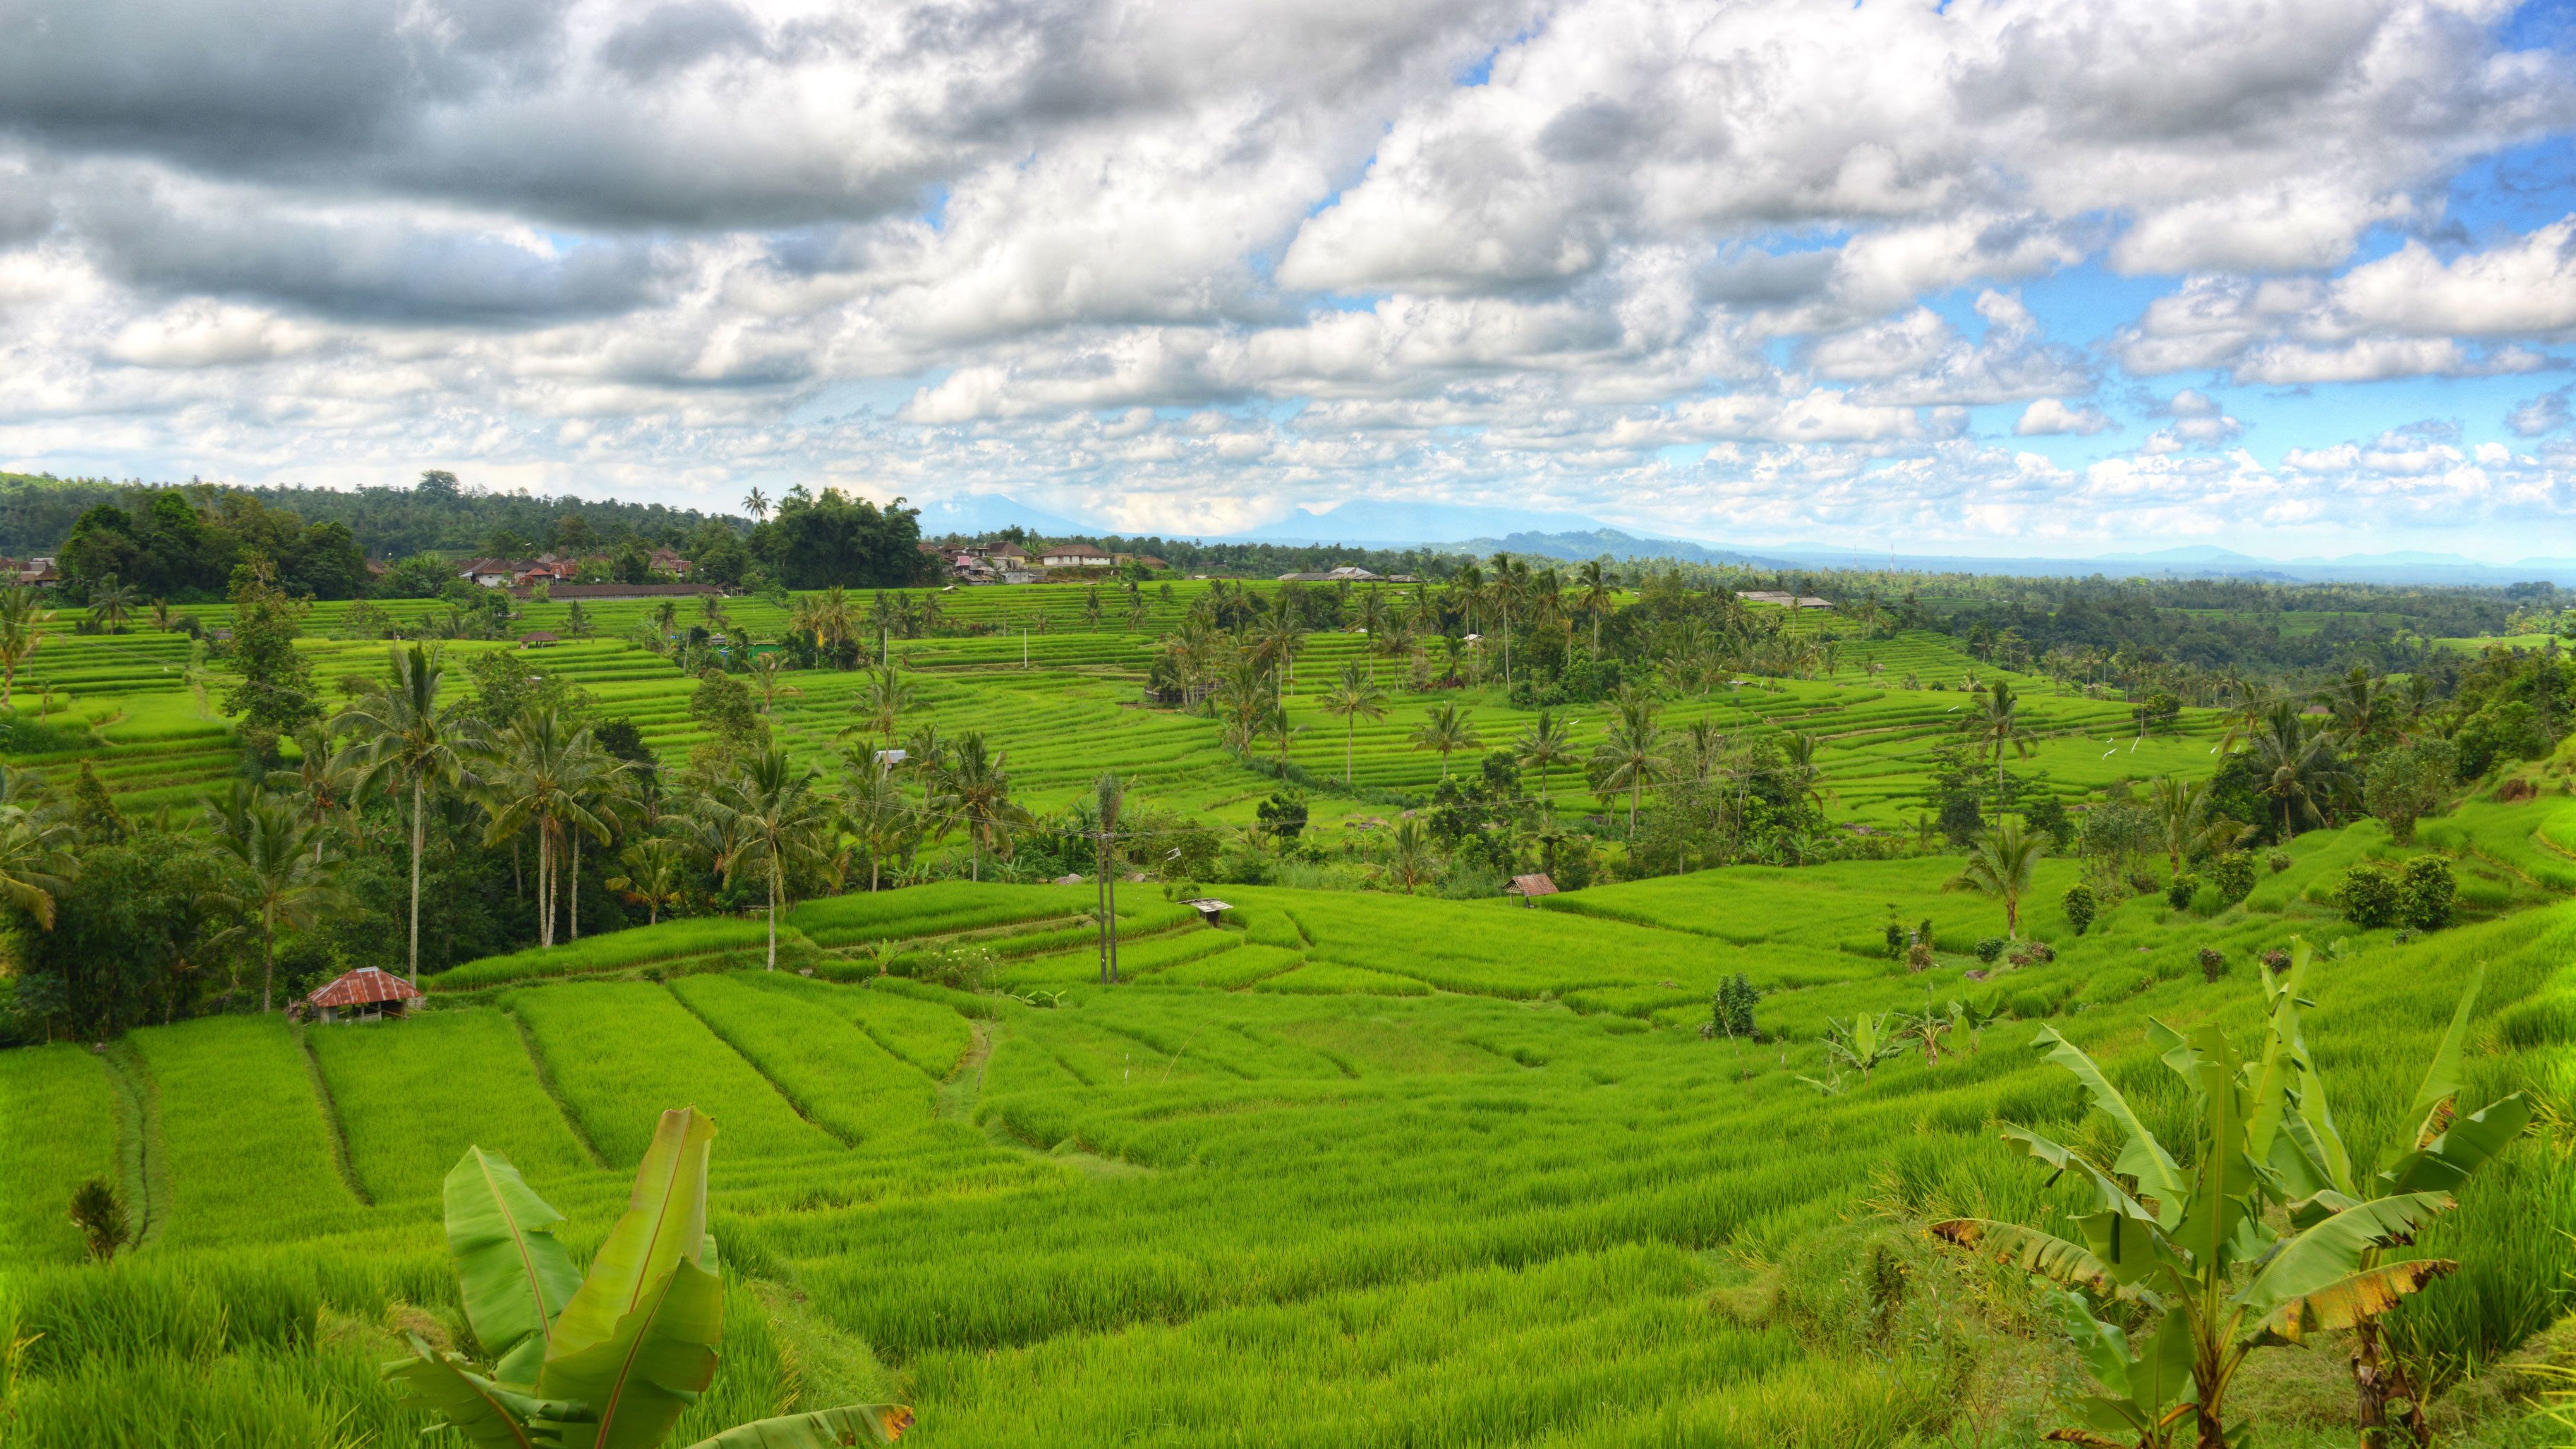 Panoramic view of lush green rice field in Bali